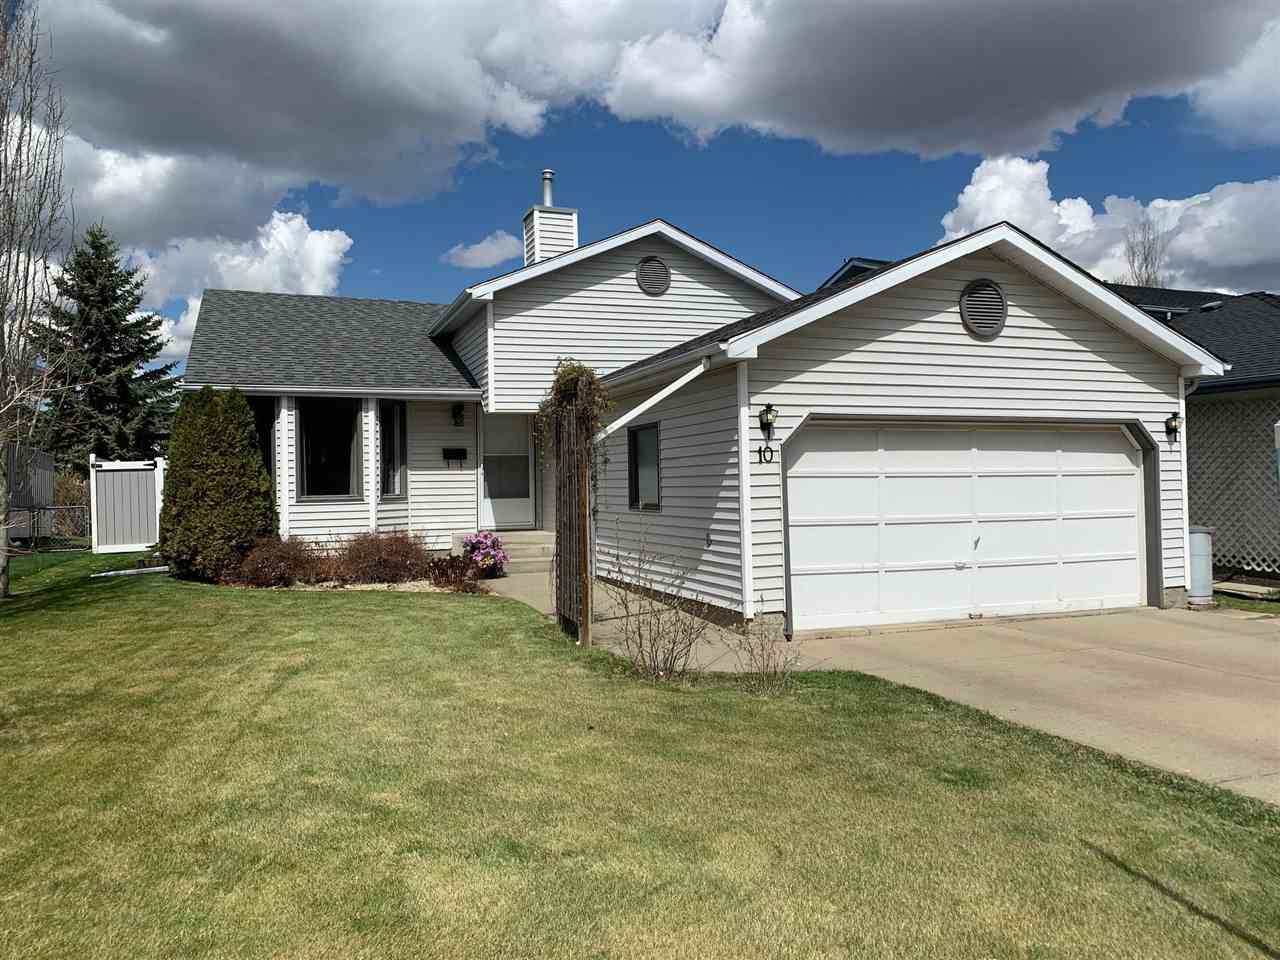 This beauty is located on a quiet crescent in DESIREABLE STONESHIRE just steps to the LINKS GOLF COURSE!!!  This 4-level split is warm and inviting featuring VAULTED CEILINGS as you enter the home.  The main level offers a cozy living room, dining area and kitchen with STAINLESS STEEL APPLIANCES and patio doors to the backyard.  The upper level consists of 3 bedrooms and a 4-piece bathroom.  Step down to the lower level and be greeted by a spacious family room with wood burning fireplace, a 4th bedroom, and another 4-piece bathroom. The basement is fully finished with a large recreation room and den/home office.  Many upgrades over the past few years including HIGH EFFICIENCY FURNACE and AIR CONDITIONING (2019); SHINGLES and HOT WATER TANK (2013).  The yard is fenced and the PLAY STRUCTURE is INCLUDED! Walking distance to schools and playgrounds with ample parking this is the perfect family home!  Just move in and enjoy!